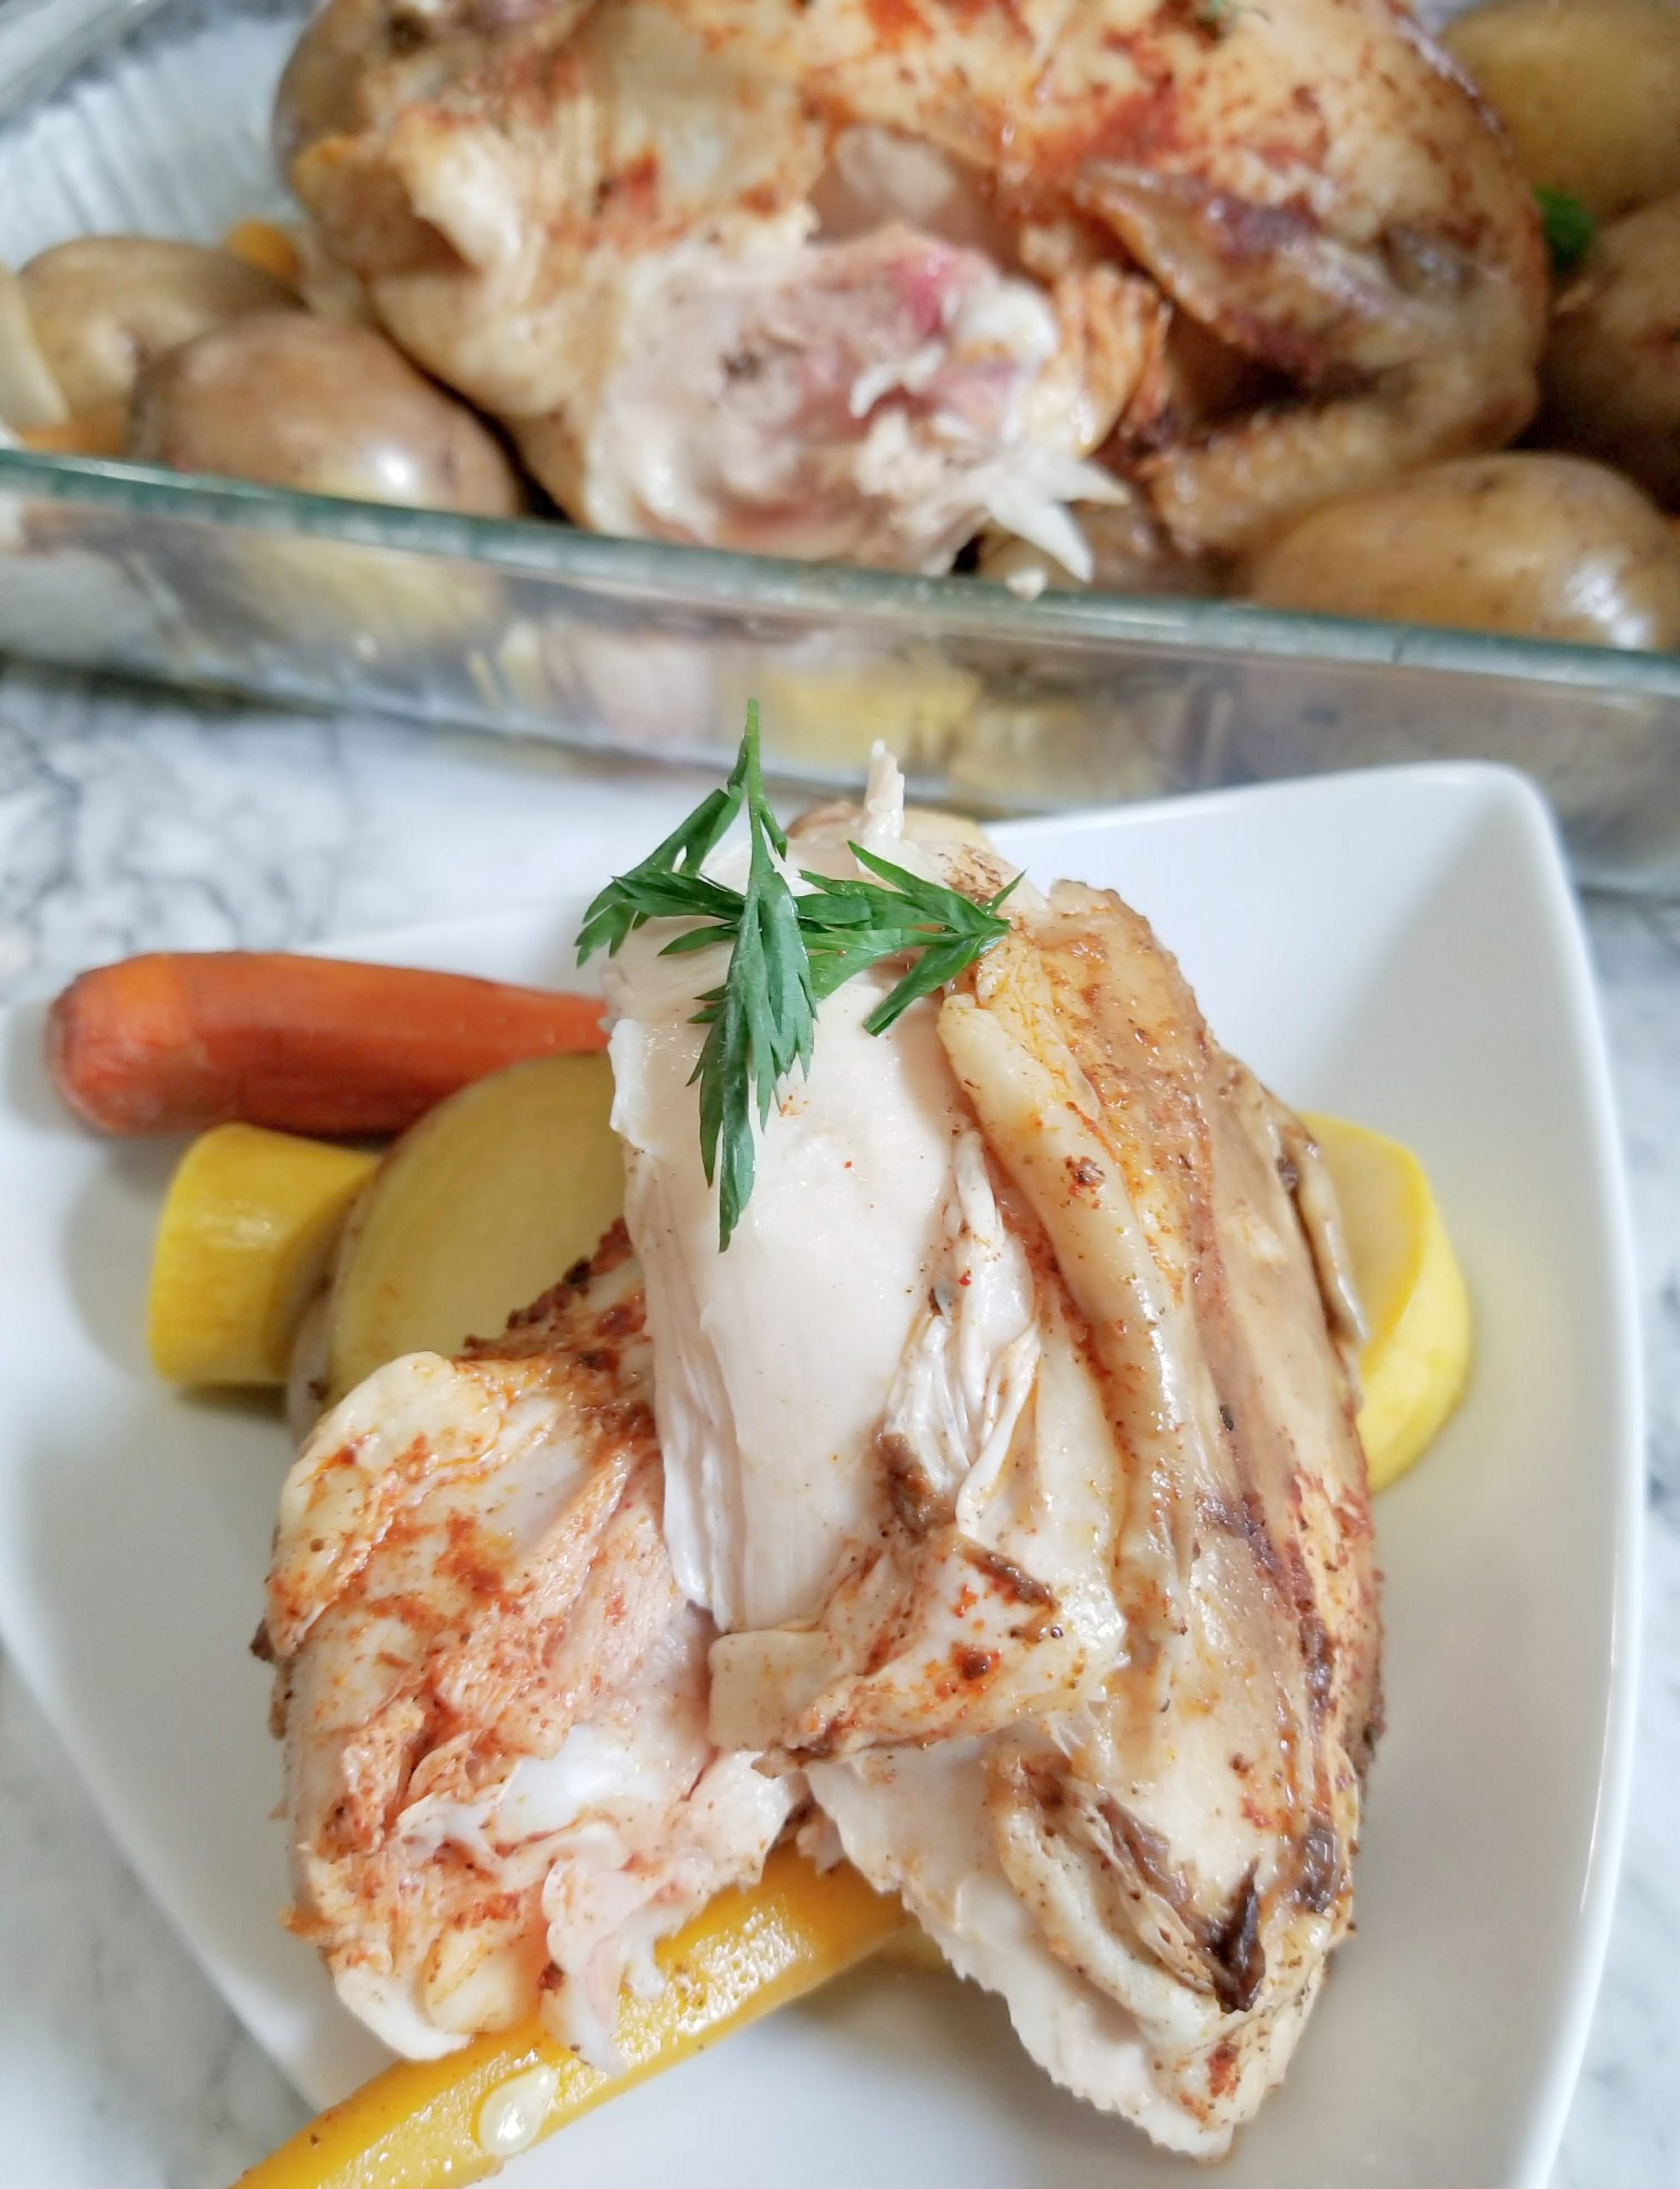 featured image showing the finished Crockpot Roasted Chicken